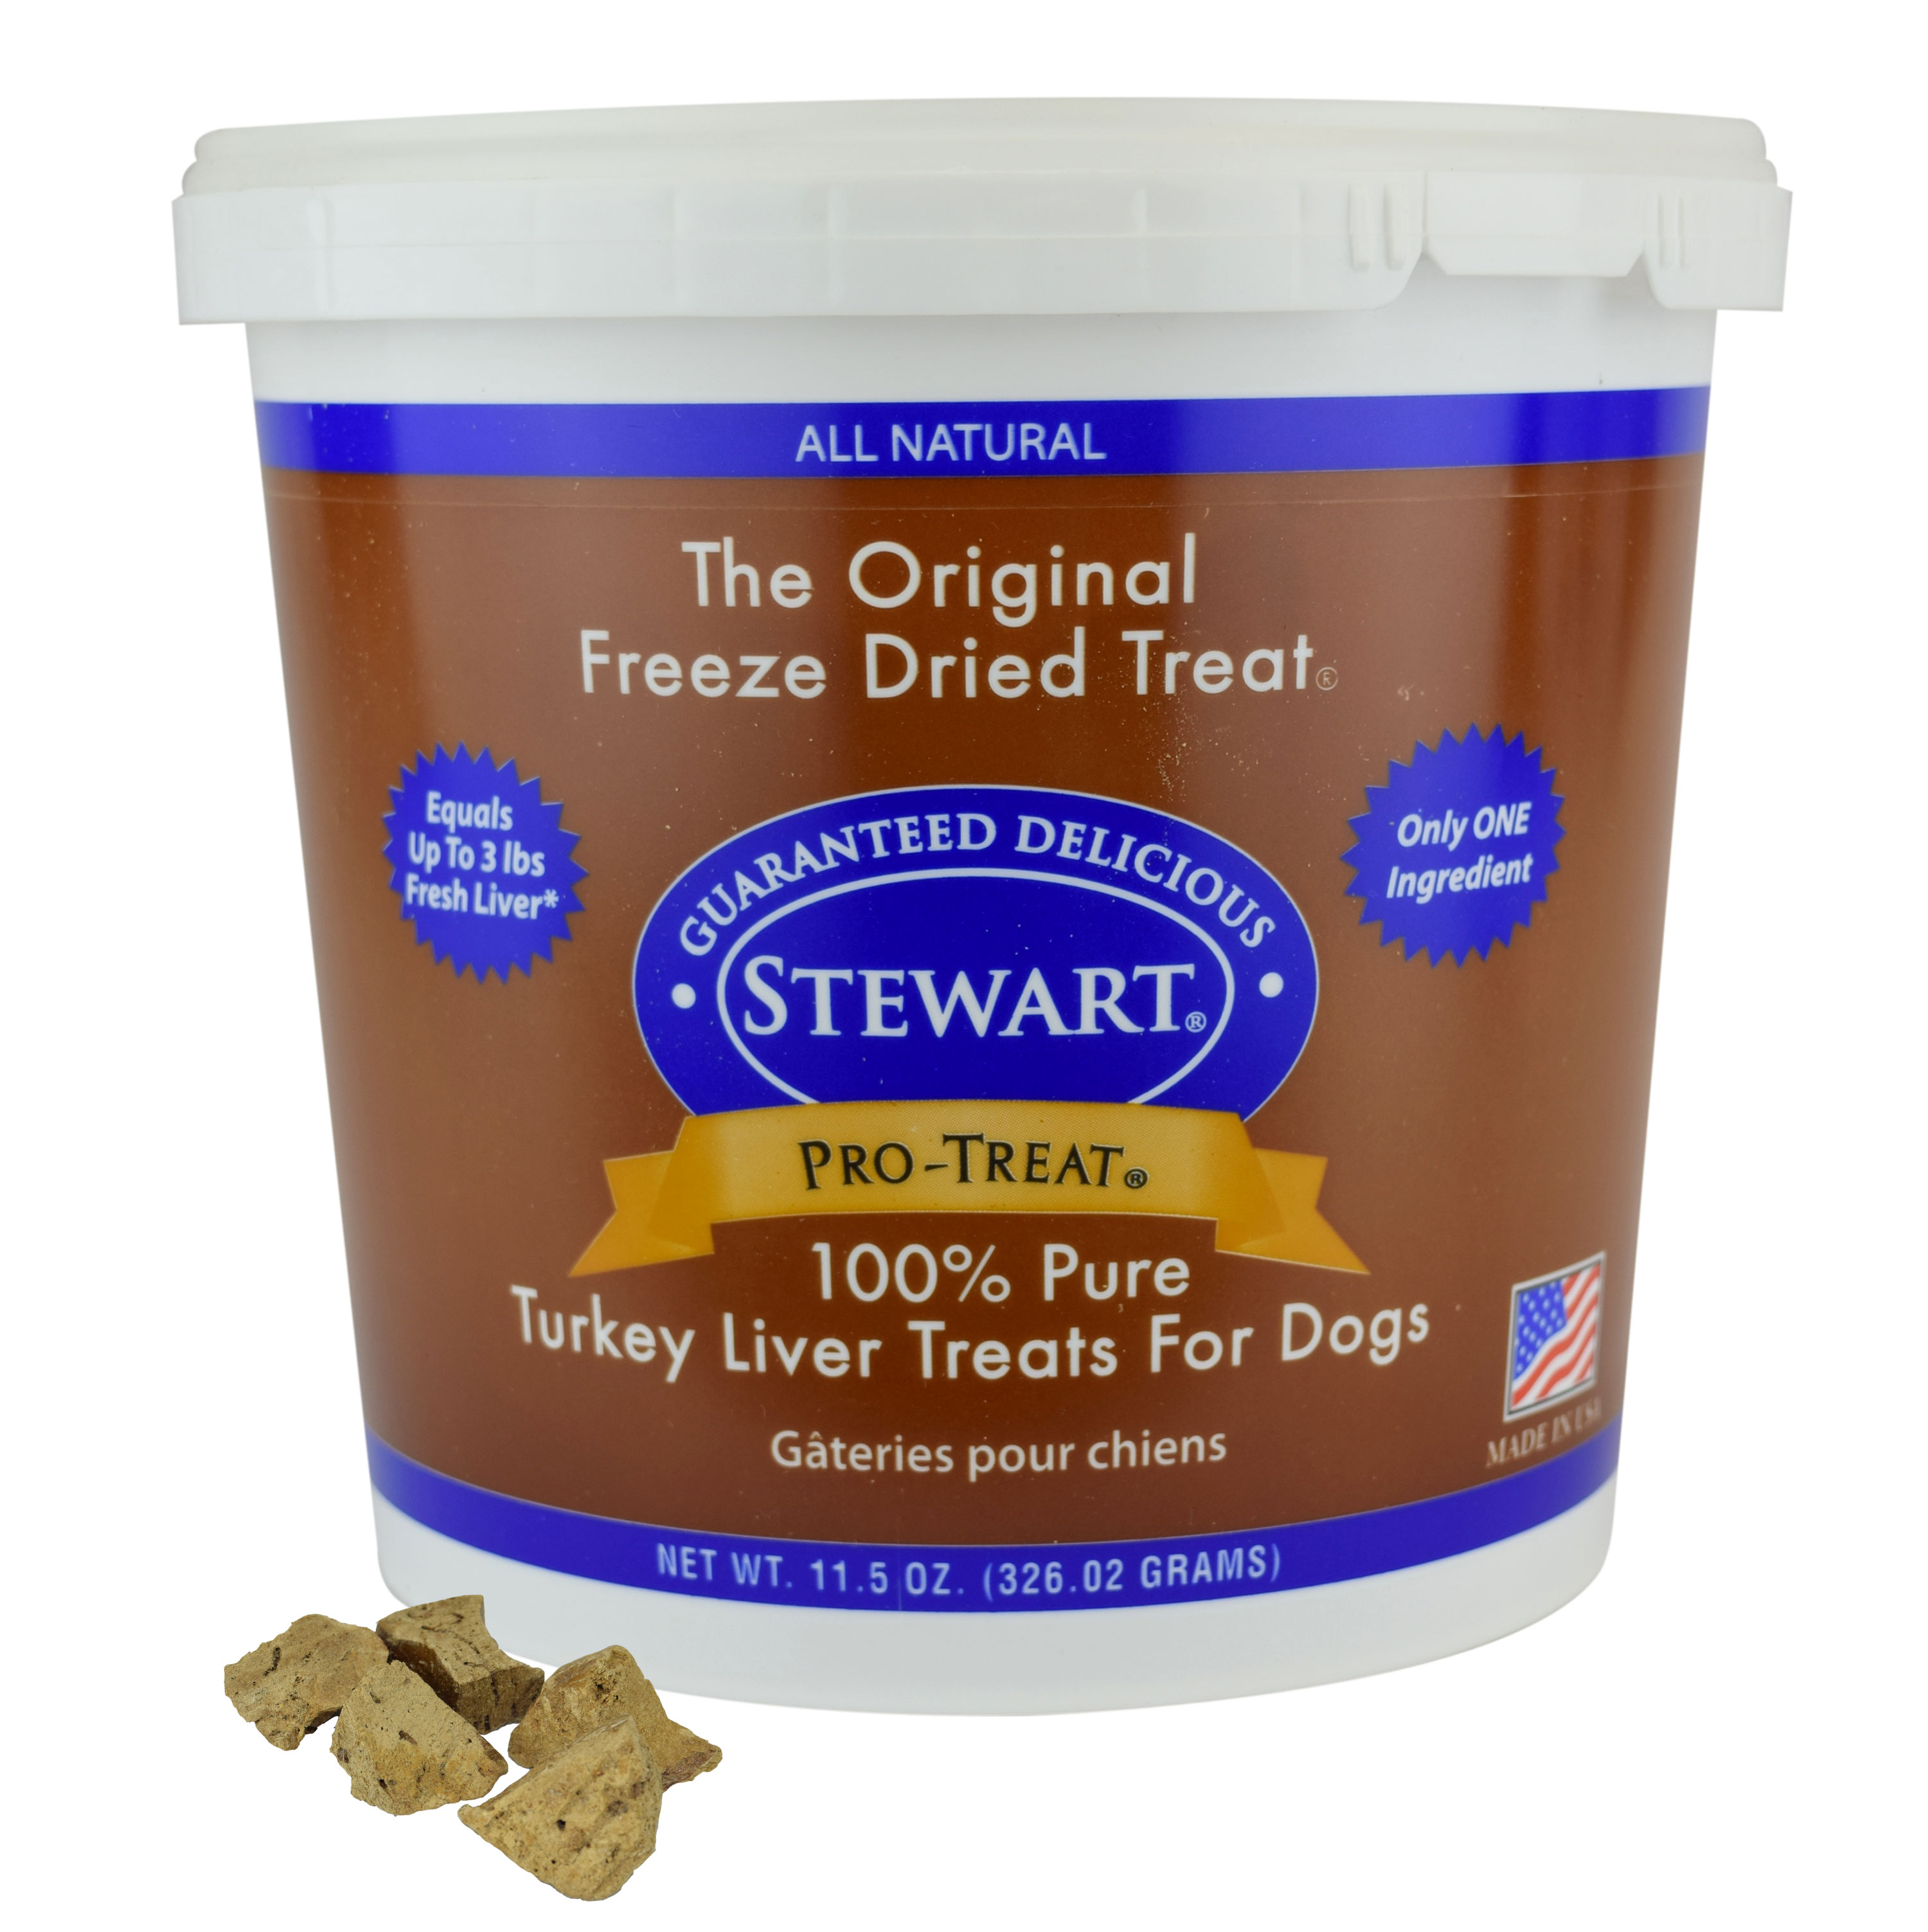 Stewart Freeze Dried Turkey Liver by Pro-Treat, 11.5 oz. Tub